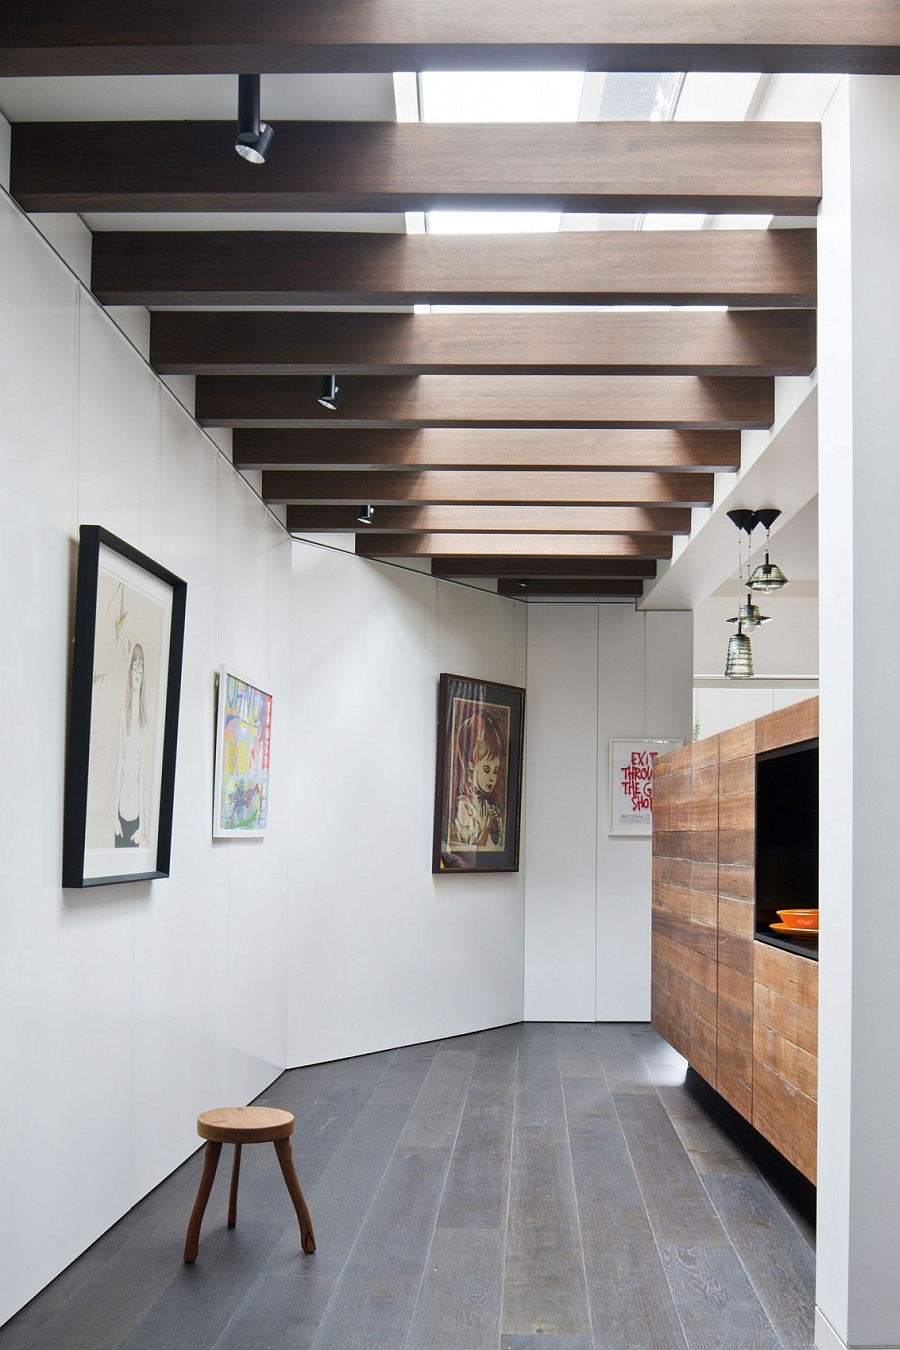 Wooden beams on the ceiling and an art gallery like setting